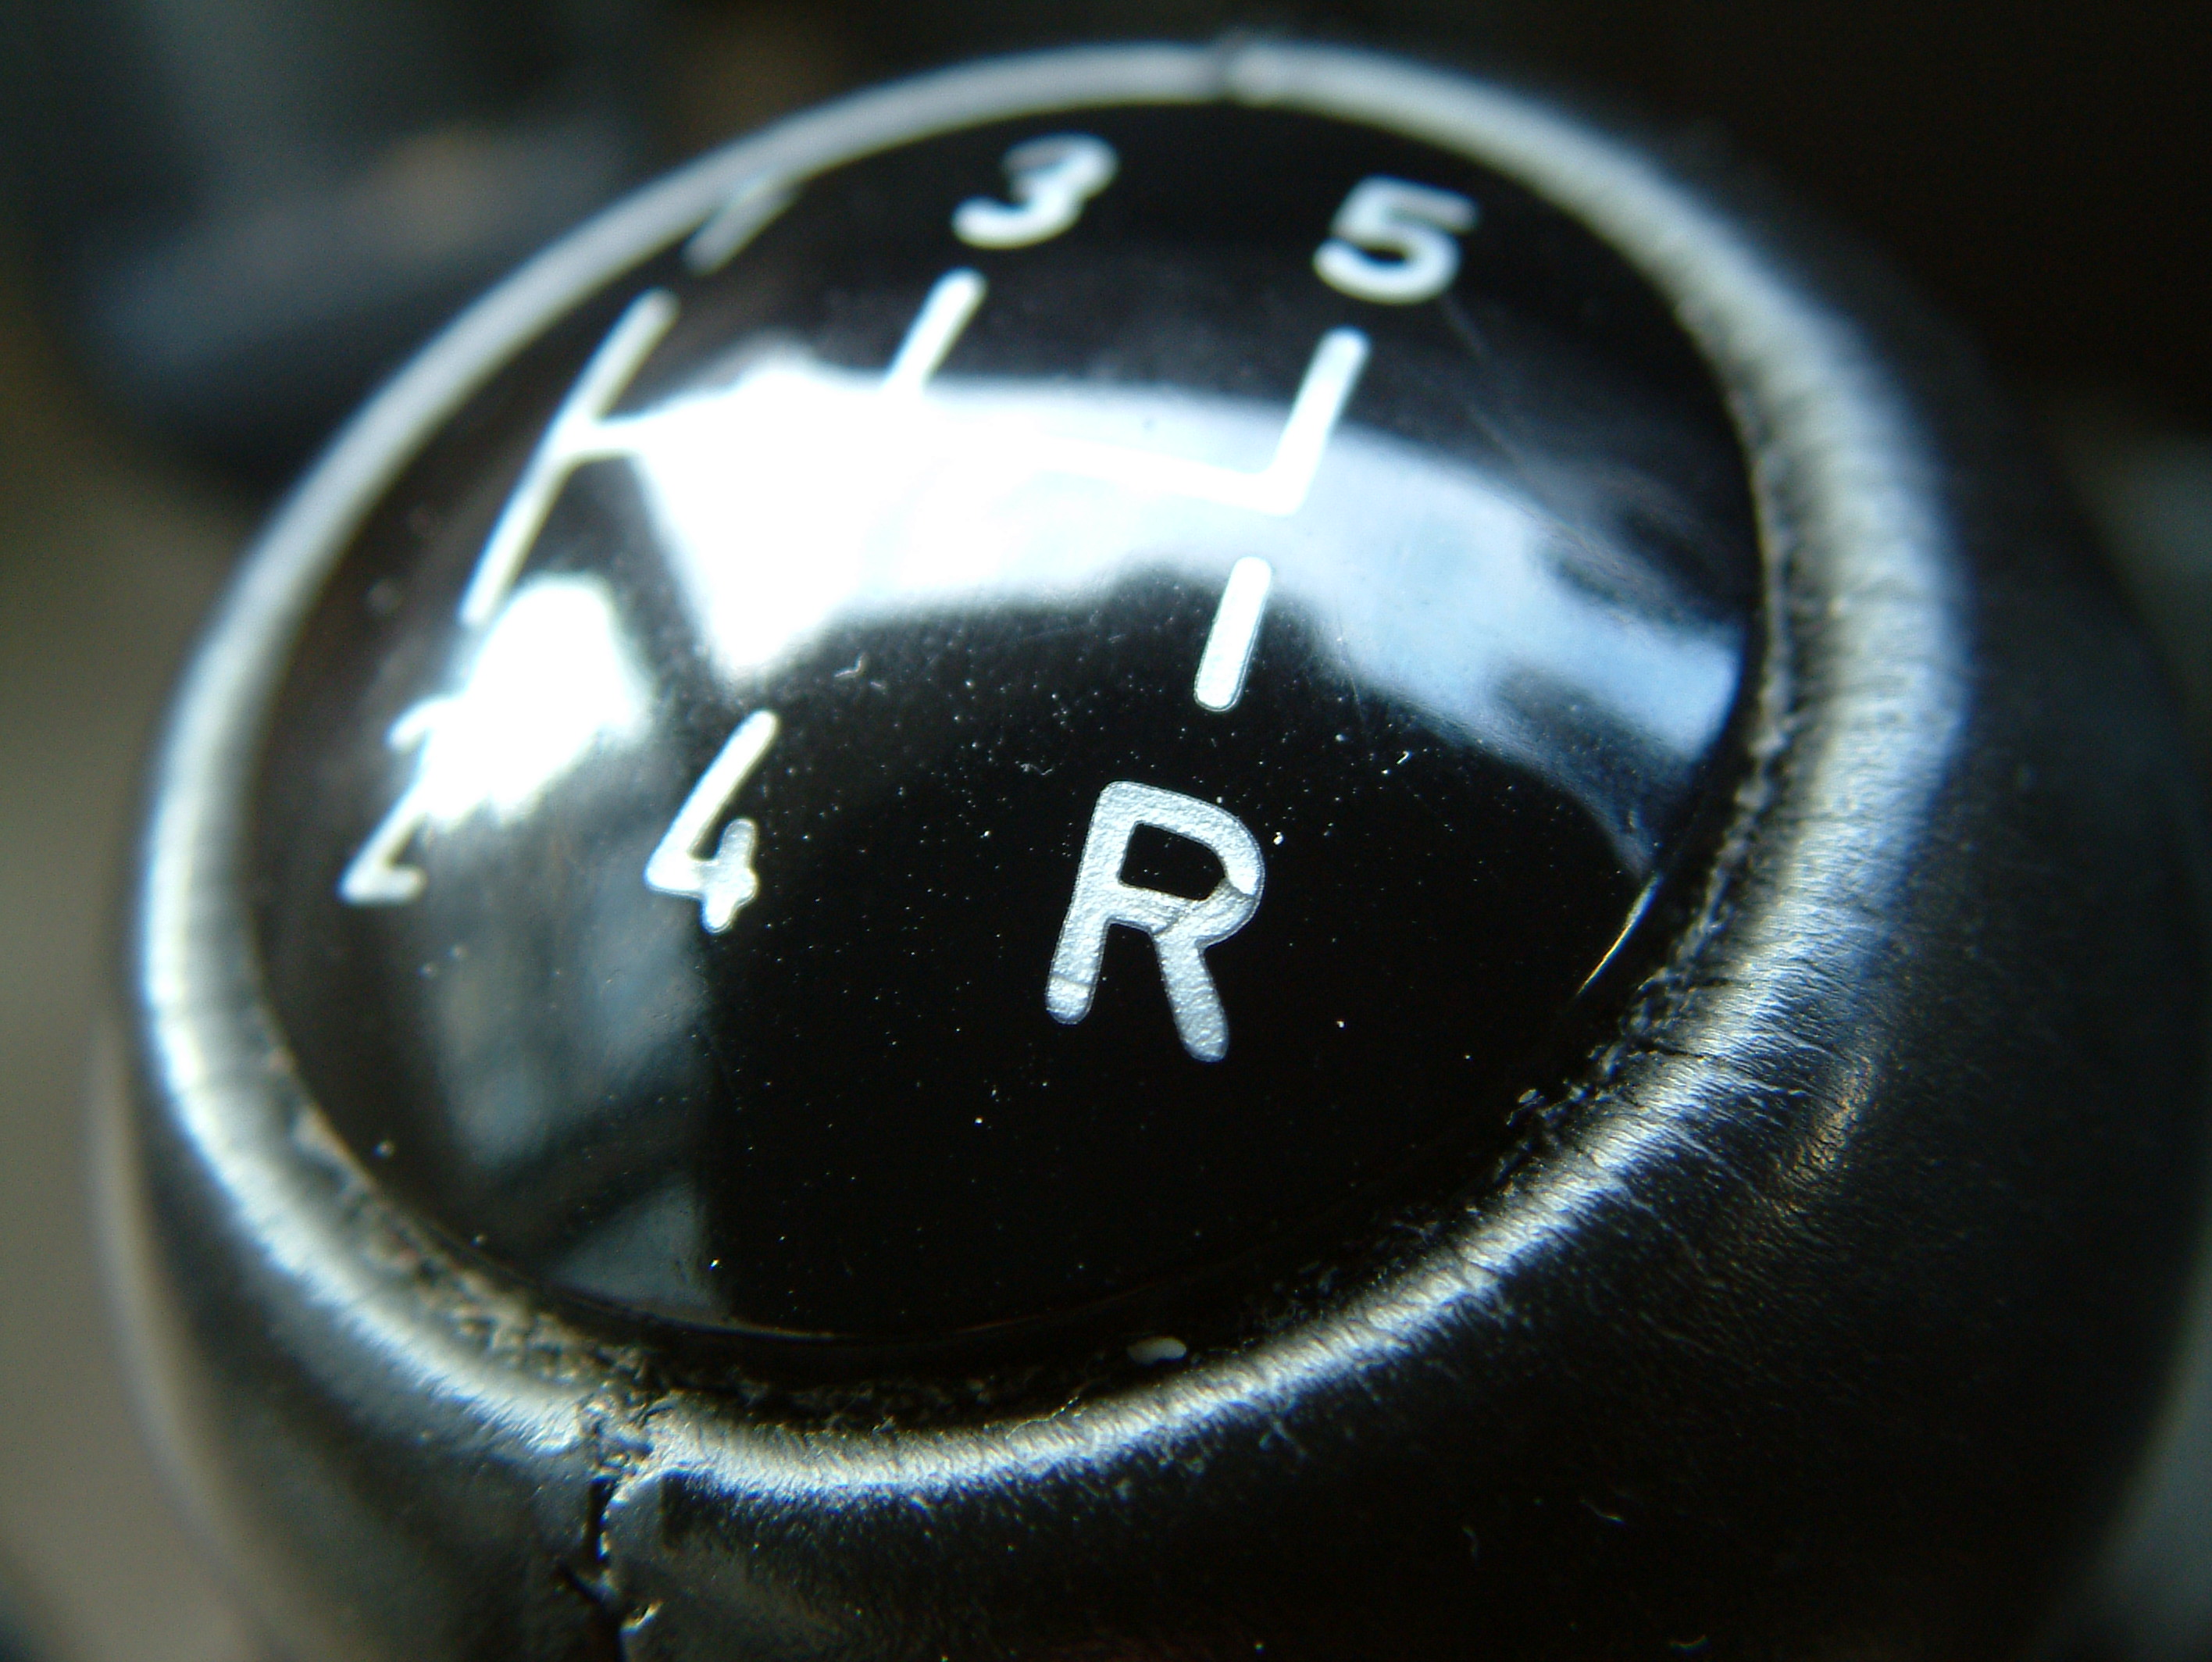 Automobile gear shifter knob with R (Reverse) in focus. Image credit: sxc.hu user myles